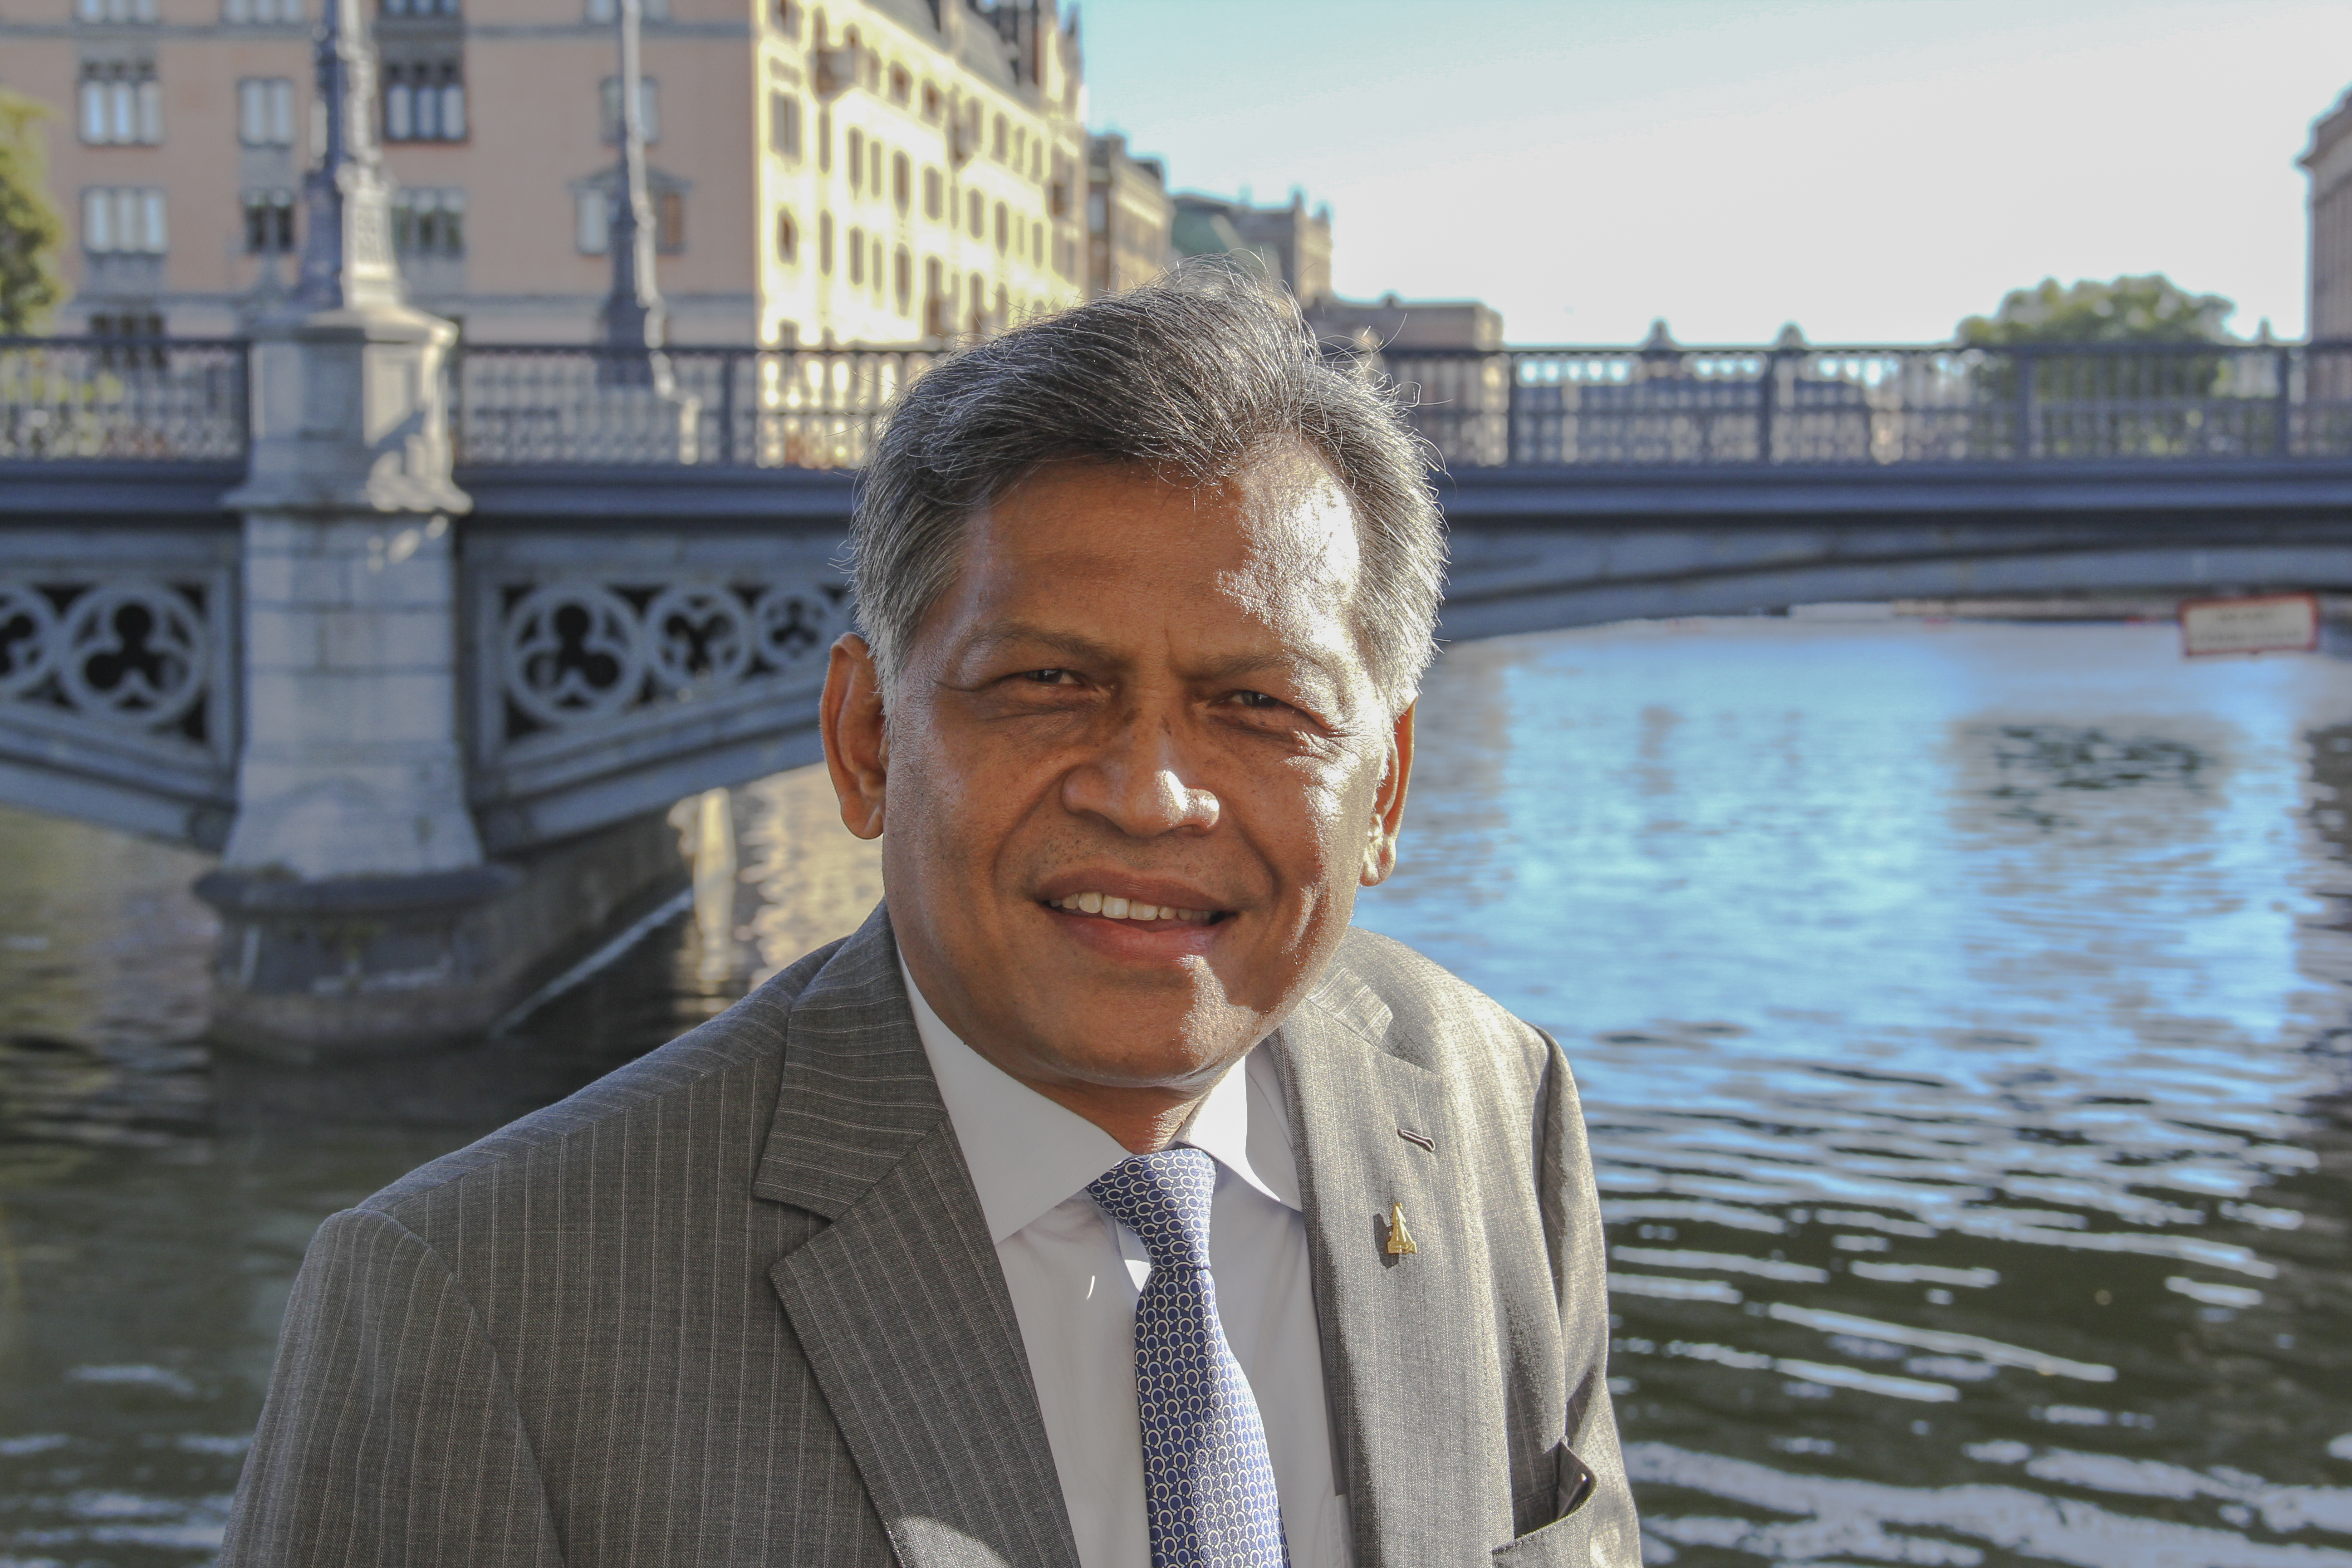 Surin Pitsuwan served as the Chair of International IDEA's Board of Advisers since 2014 and as a member of the Board since 2013.